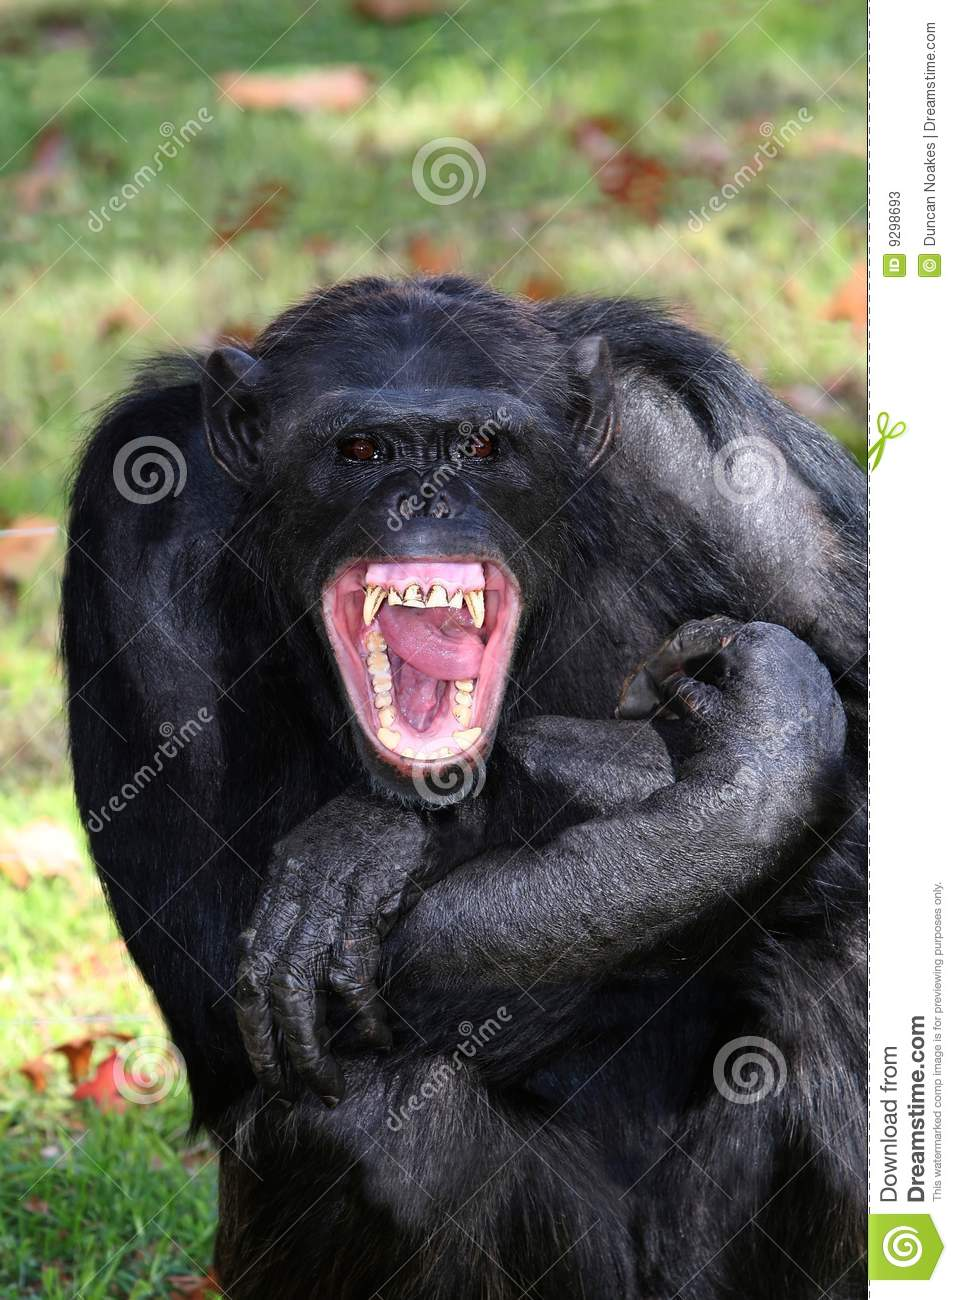 Black chimpanzee with mouth wide open showing teeth and tongue.